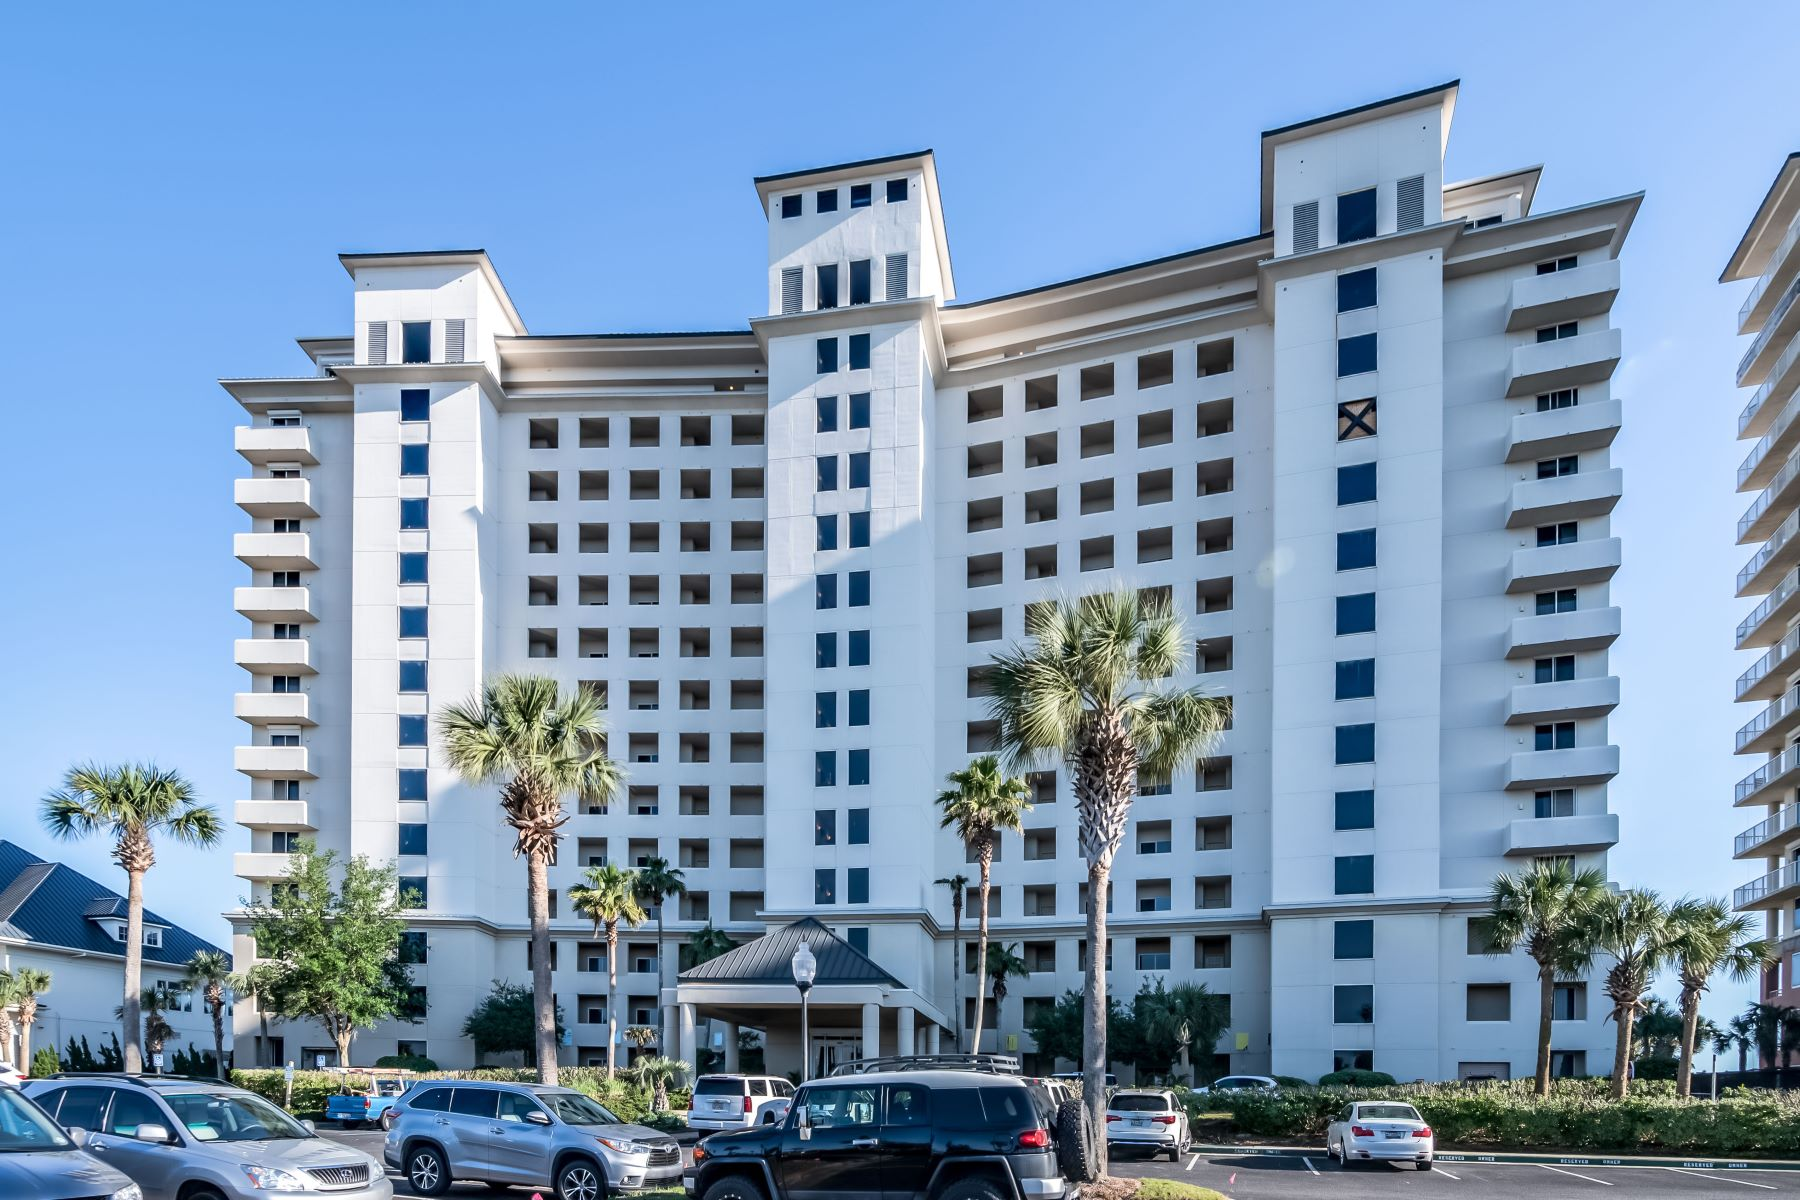 Single Family Home for Active at The Beach Club 527 Beach Club Trail Gulf Shores, Alabama 36542 United States